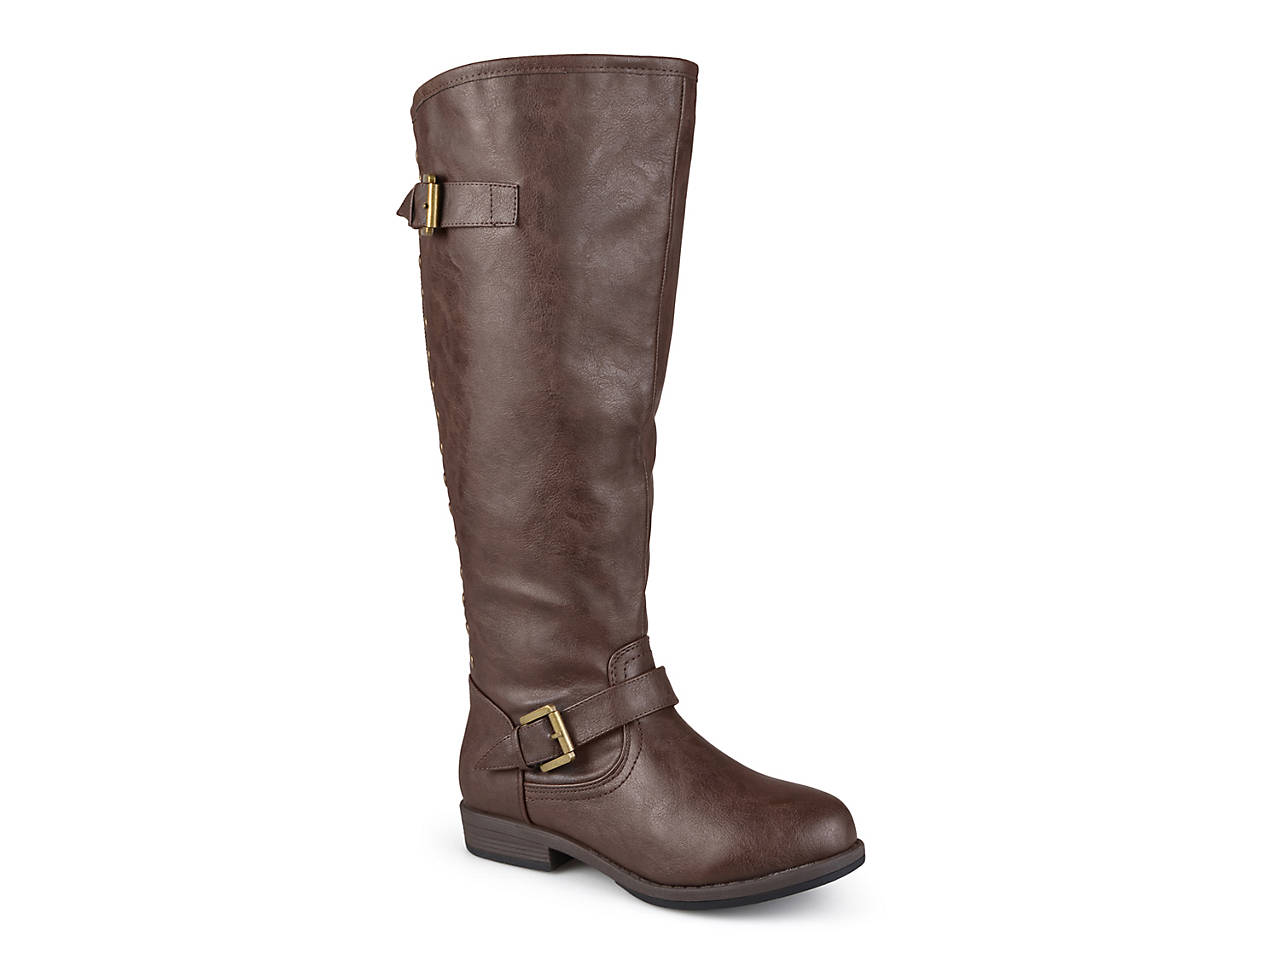 27f2832cbc88 Journee Collection Spokane Extra Wide Calf Riding Boot Women s Shoes ...